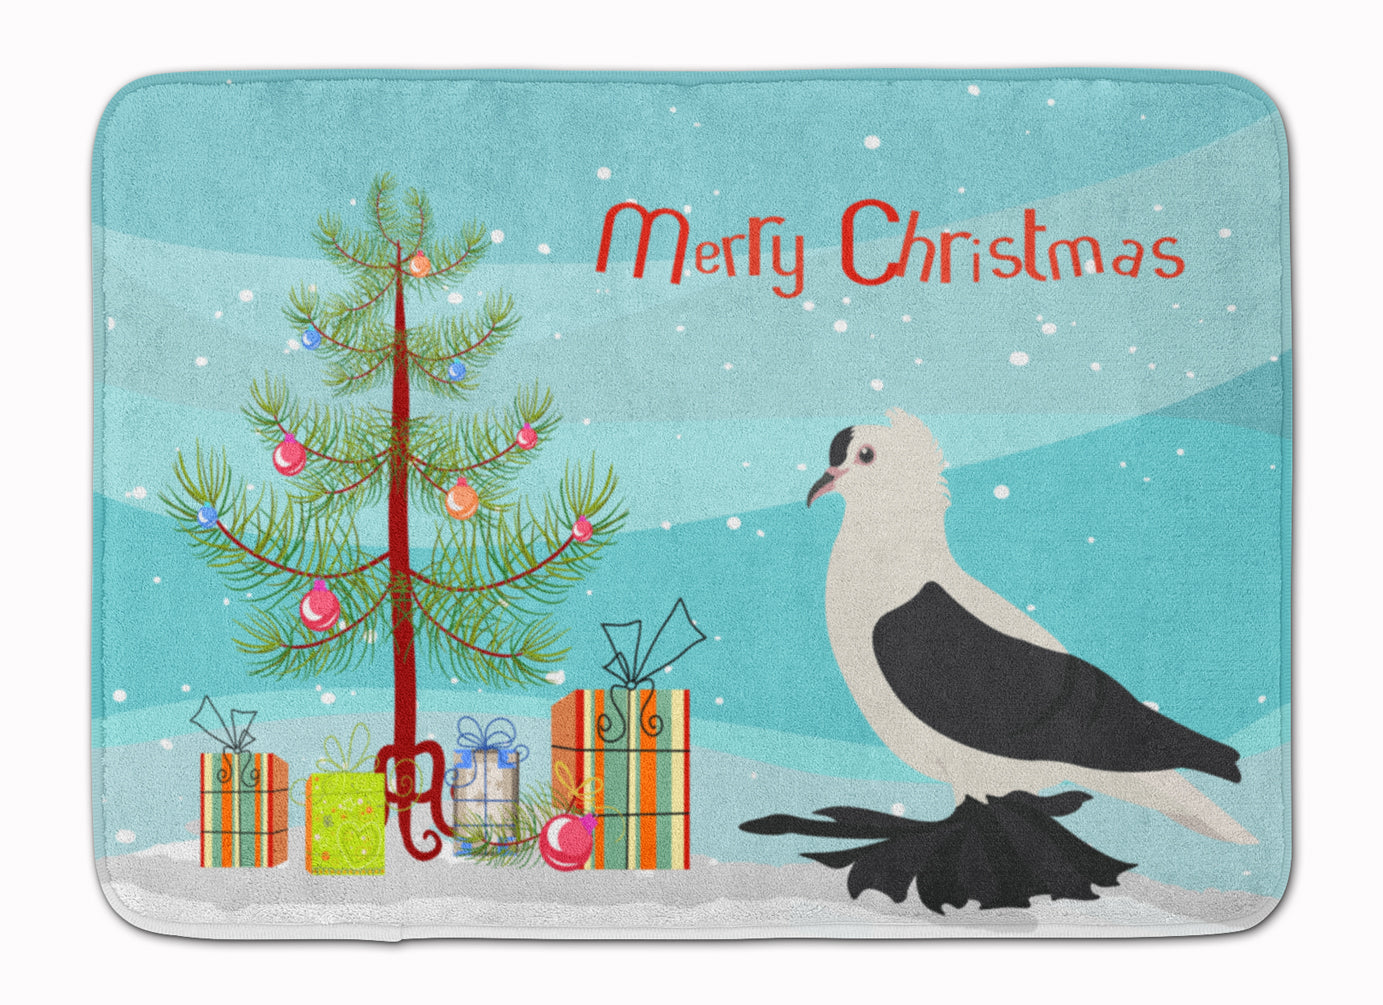 Saxon Fairy Swallow Pigeon Christmas Machine Washable Memory Foam Mat BB9313RUG by Caroline's Treasures